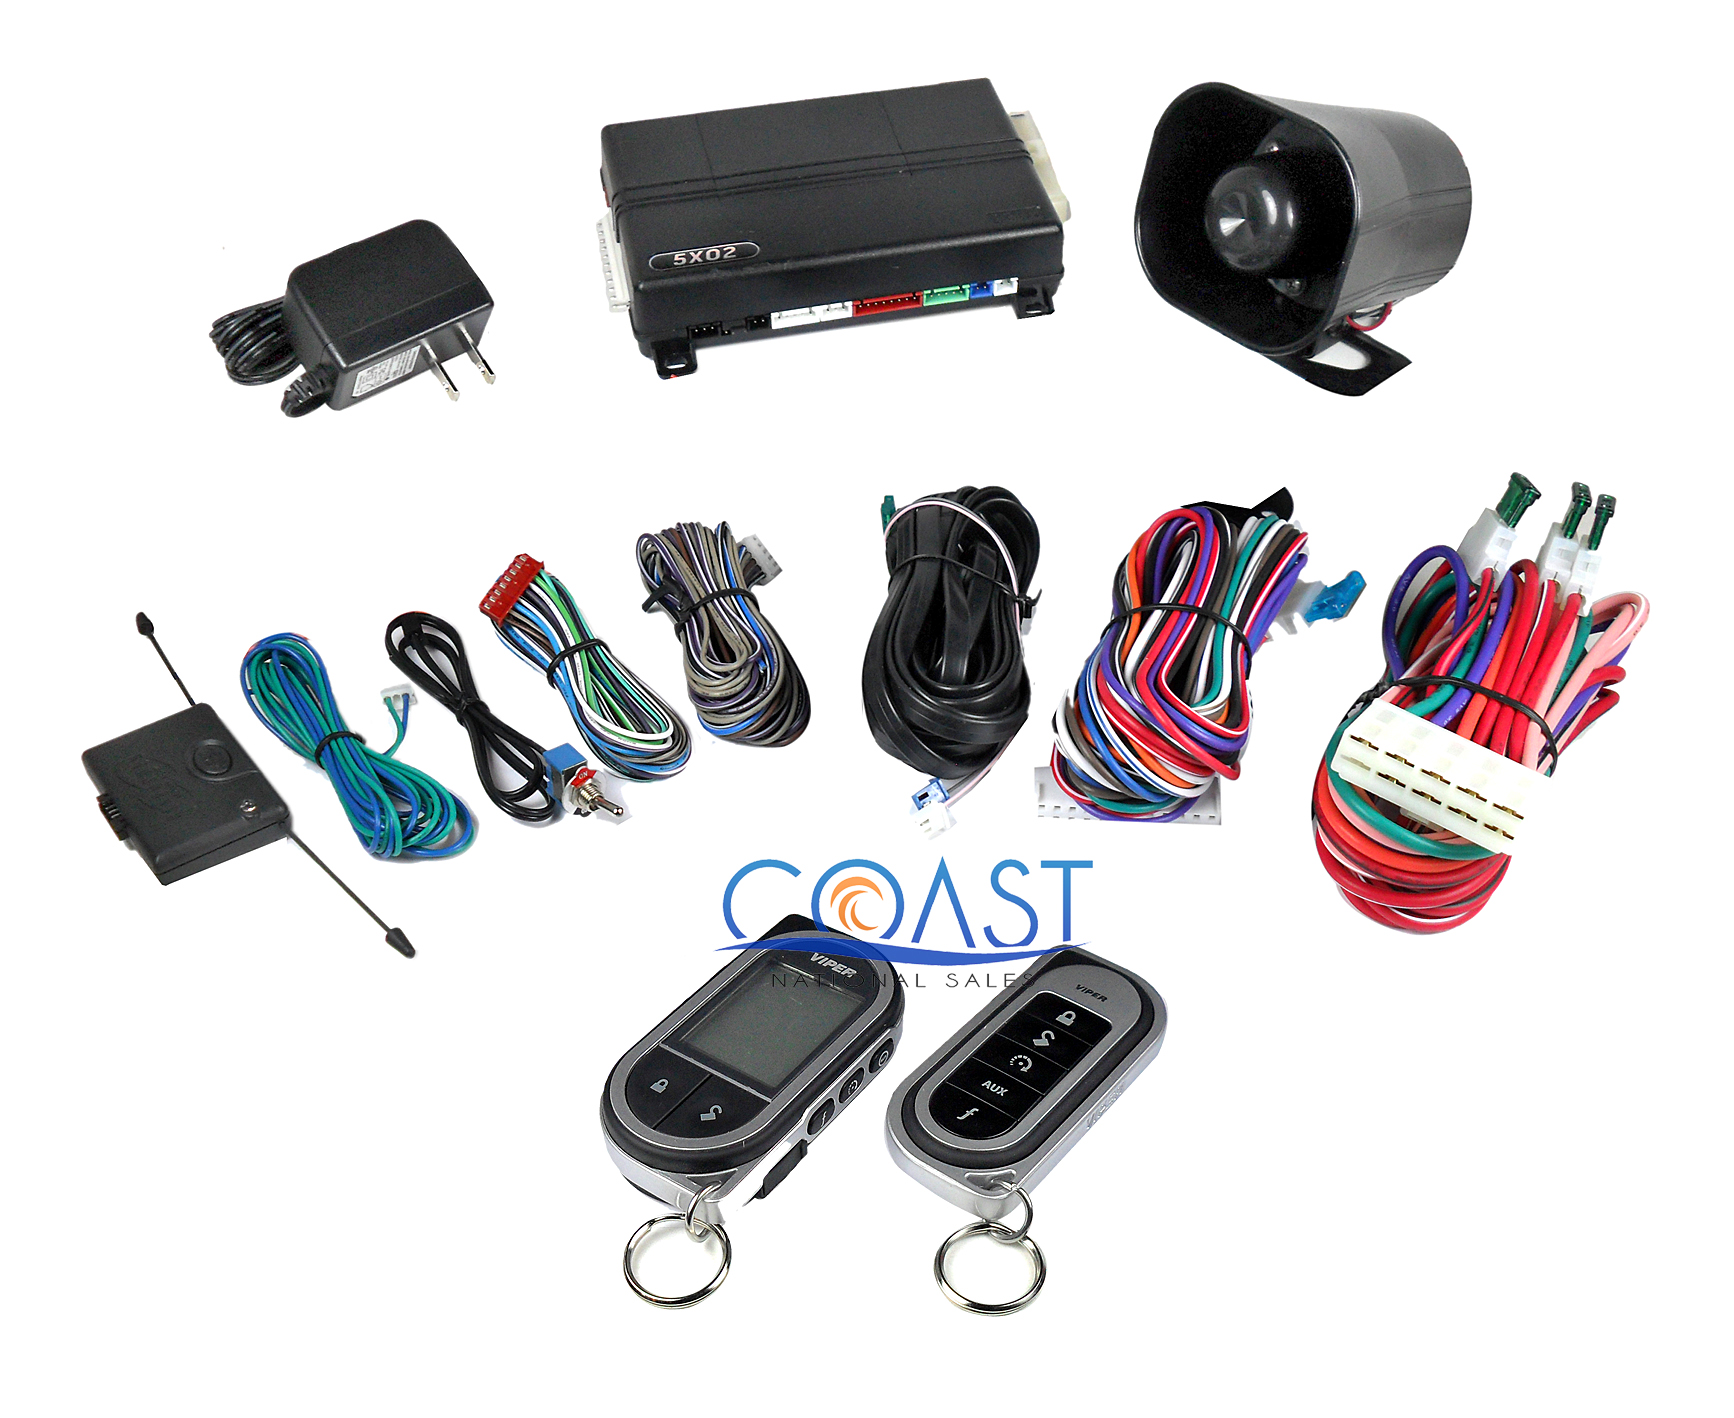 1wamr 1600 as well 7145v furthermore 2012 Dodge Ram Remote as well How To Program Viper Remote additionally 2013 2016 Dodge Ram Truck Keyless Entry Remote Fob 4 Button Remote Start Fcc Id Gq4 54t Pn 56046956. on viper remote start programming